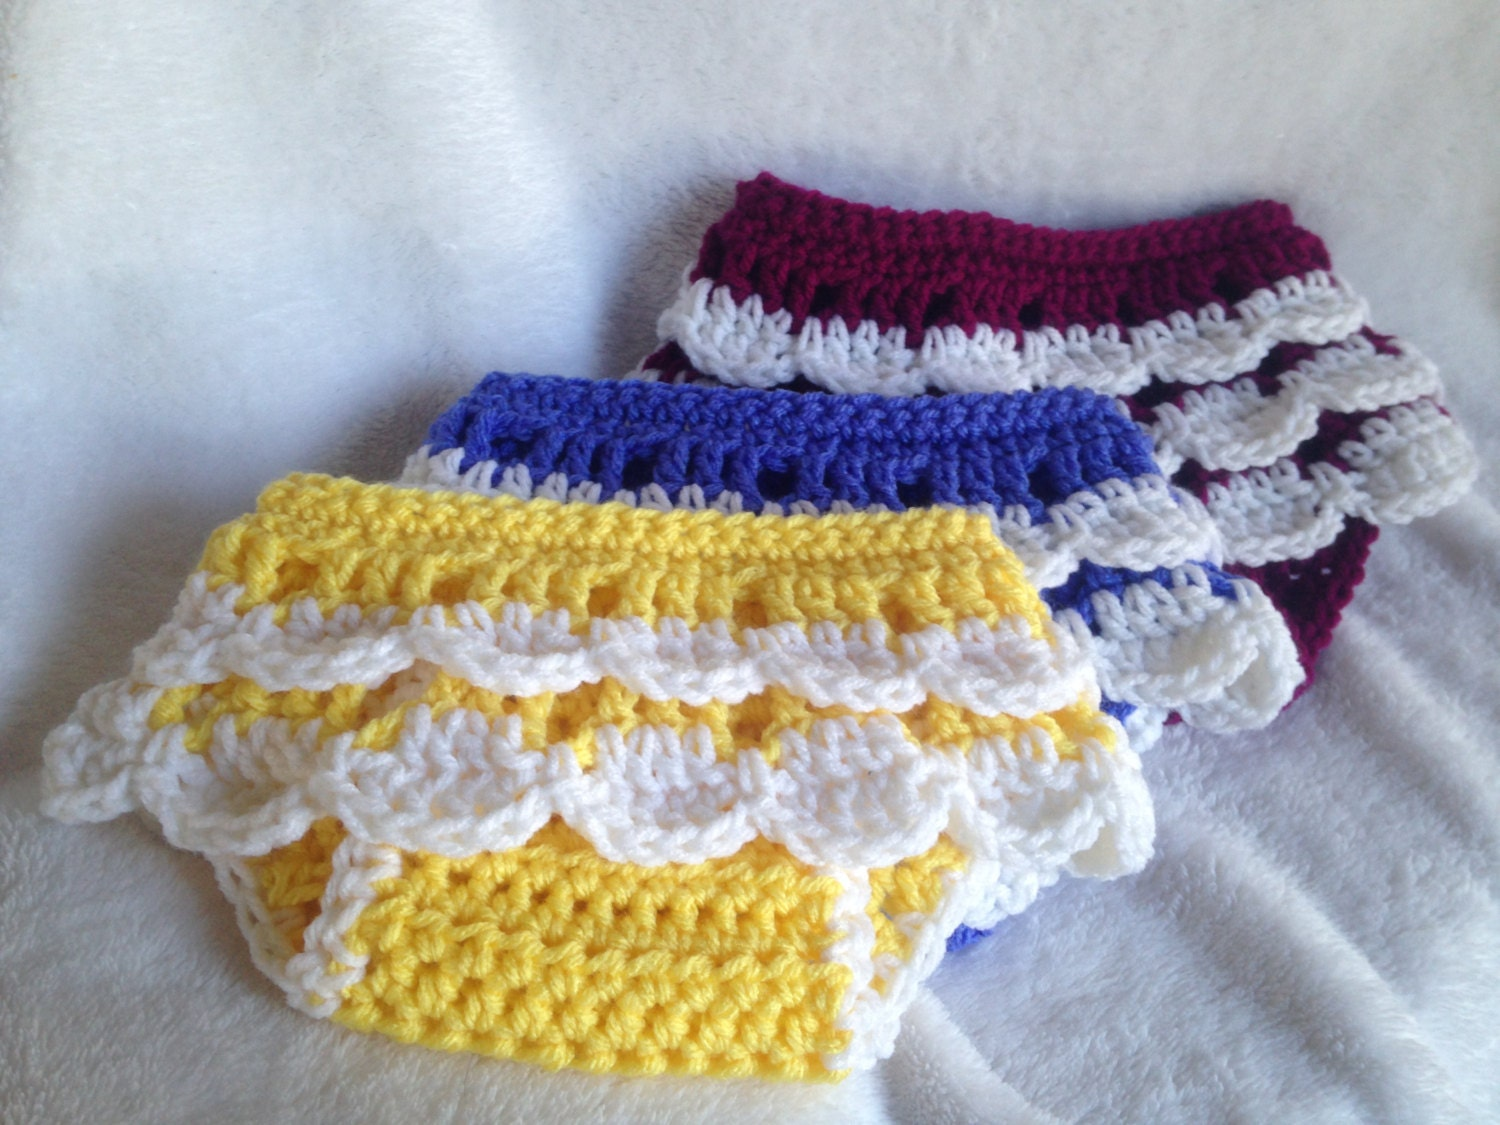 Crochet Baby Girl Diaper Cover Pattern : Crochet PATTERN ruffled diaper cover crochet baby skirt